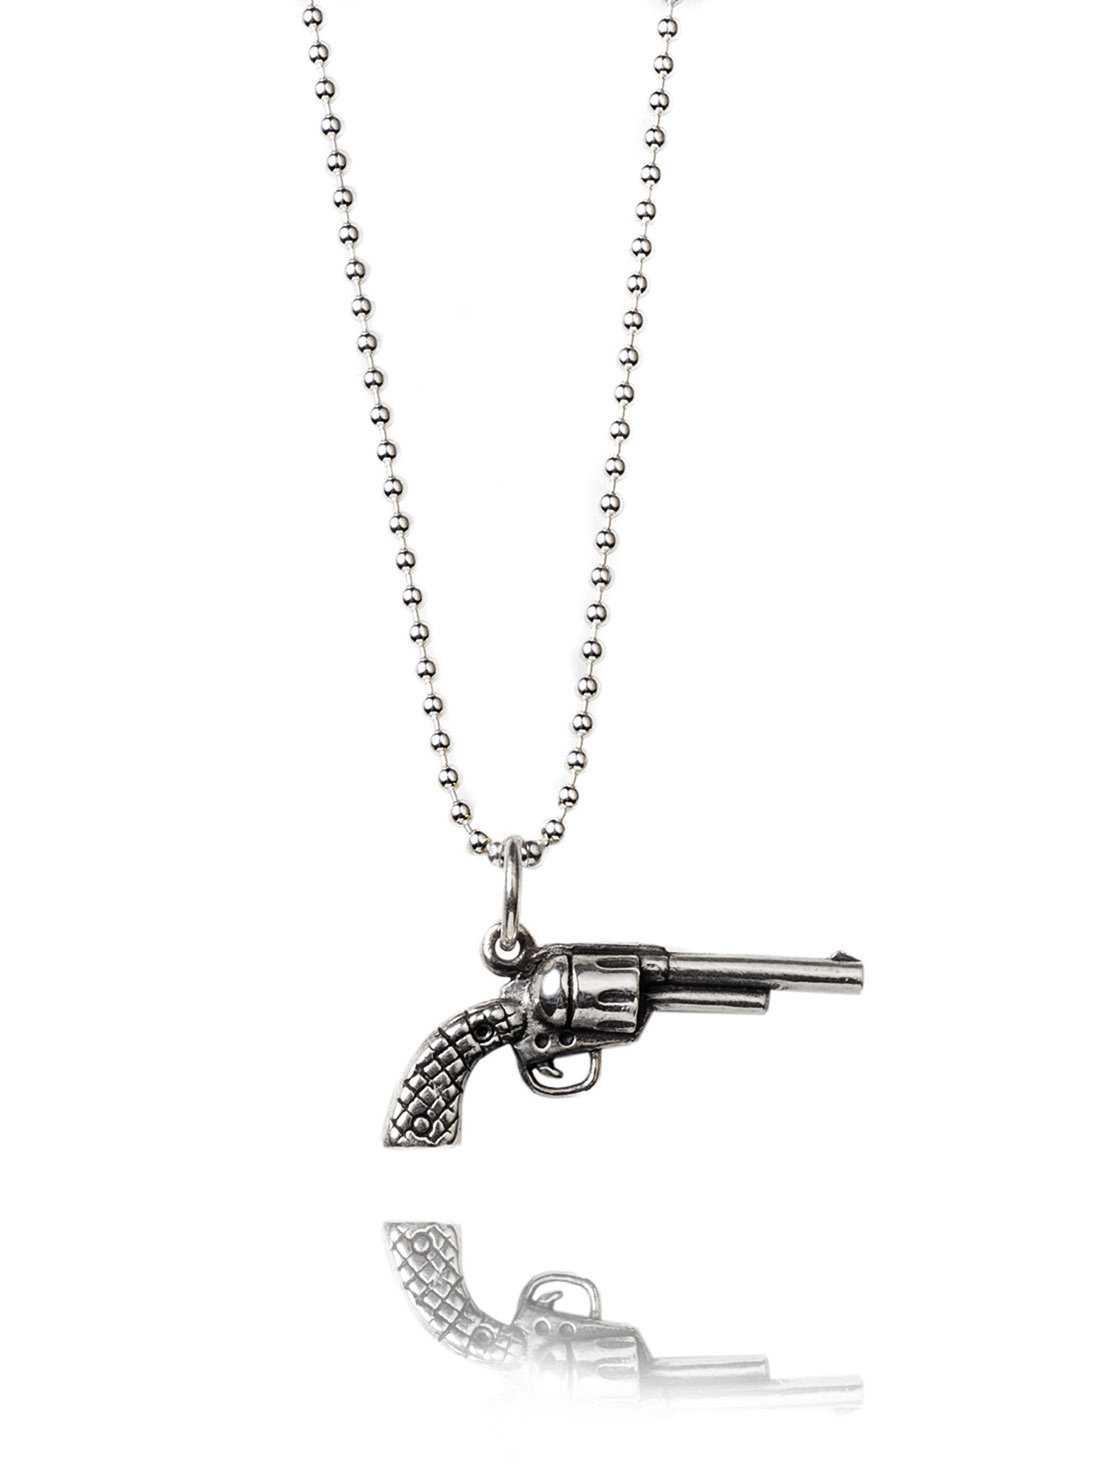 Small Silver Gun Necklace